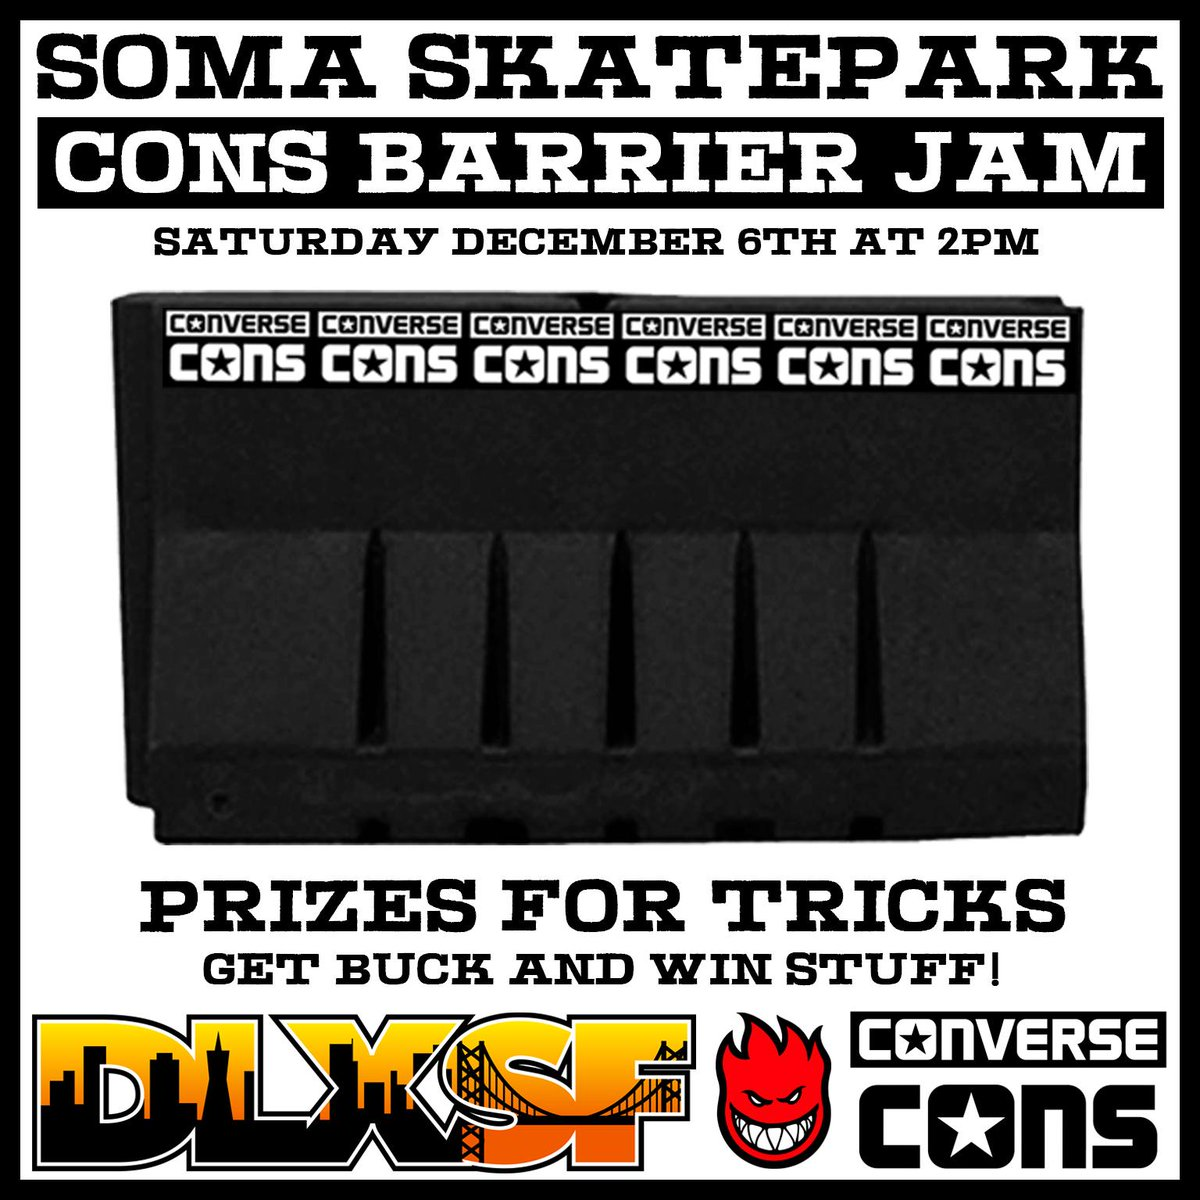 We are hosting a @Converse Barrier Jam at Soma West Skate Park in SF this Saturday, Dec. 6th at 2pm! http://t.co/sRVAhTEZF0